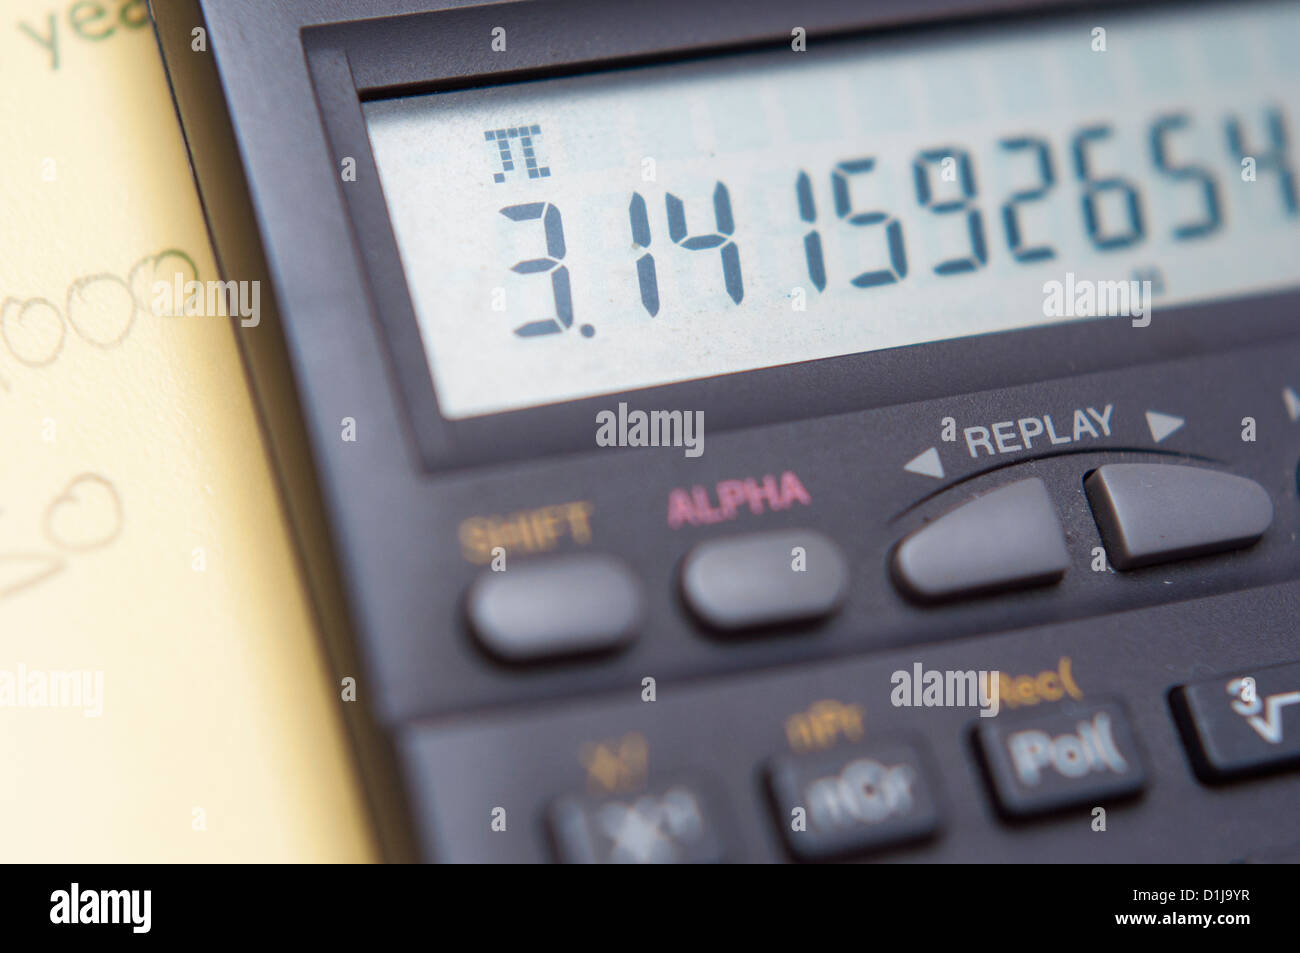 pi symbol and number displayed on a calculator stock photo 52648731